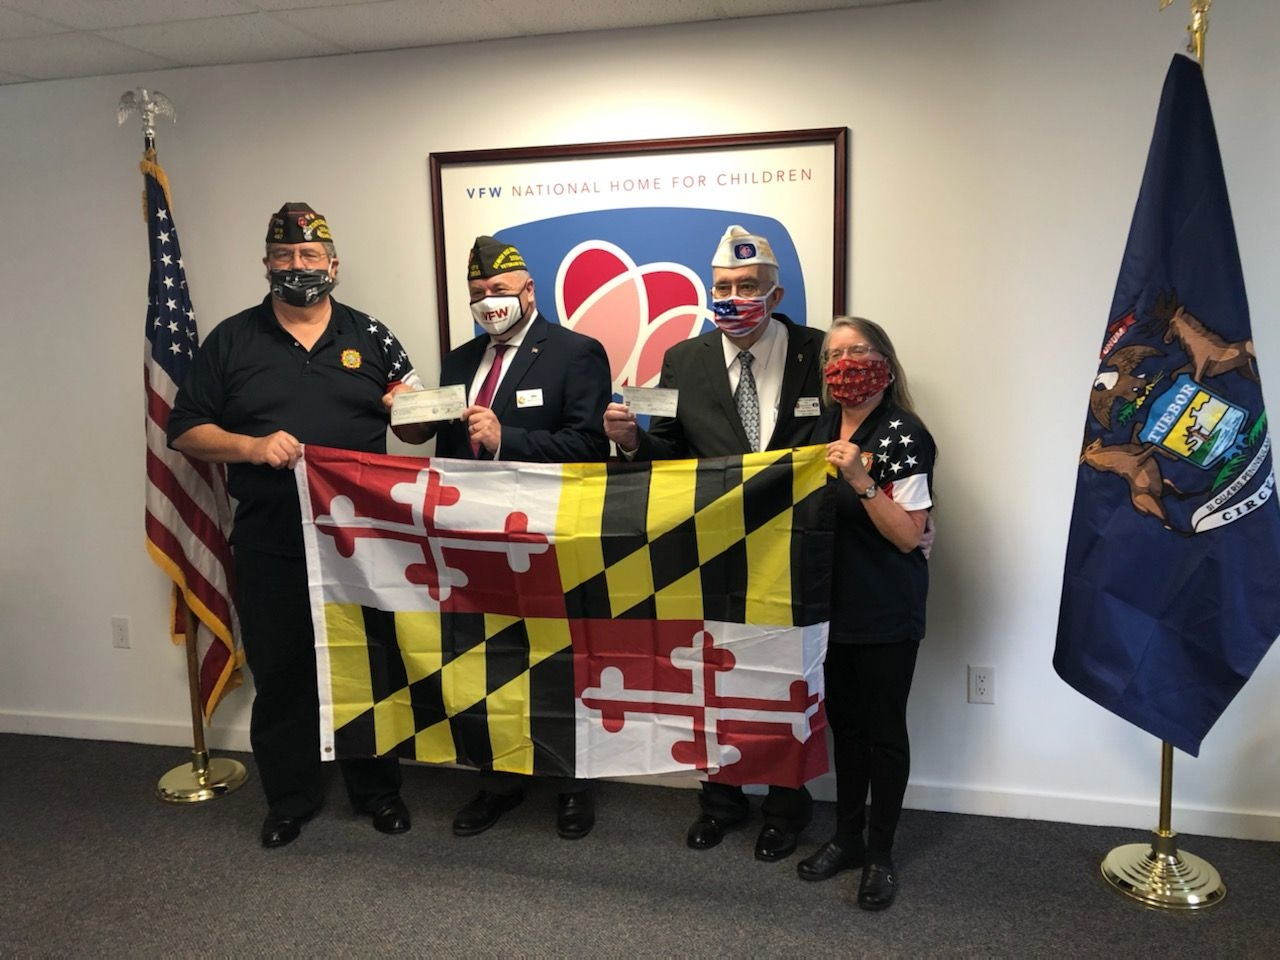 Commander Tom Williams special project donation to  VFW National Home